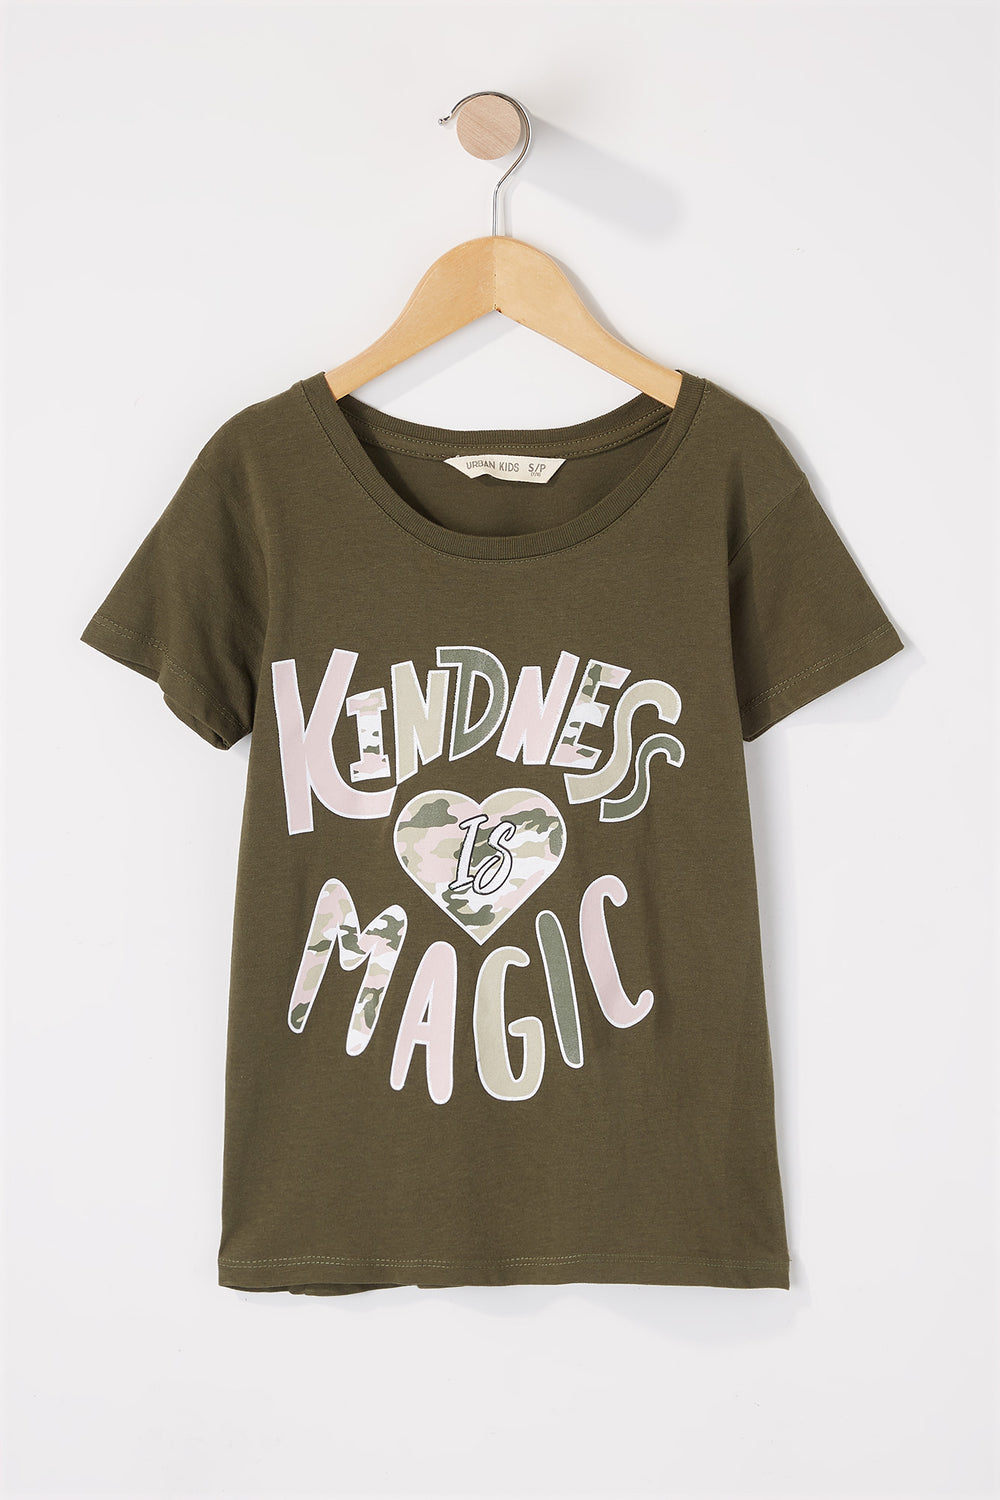 Girls Kindness Camo Glitter Graphic T-Shirt Hunter Green